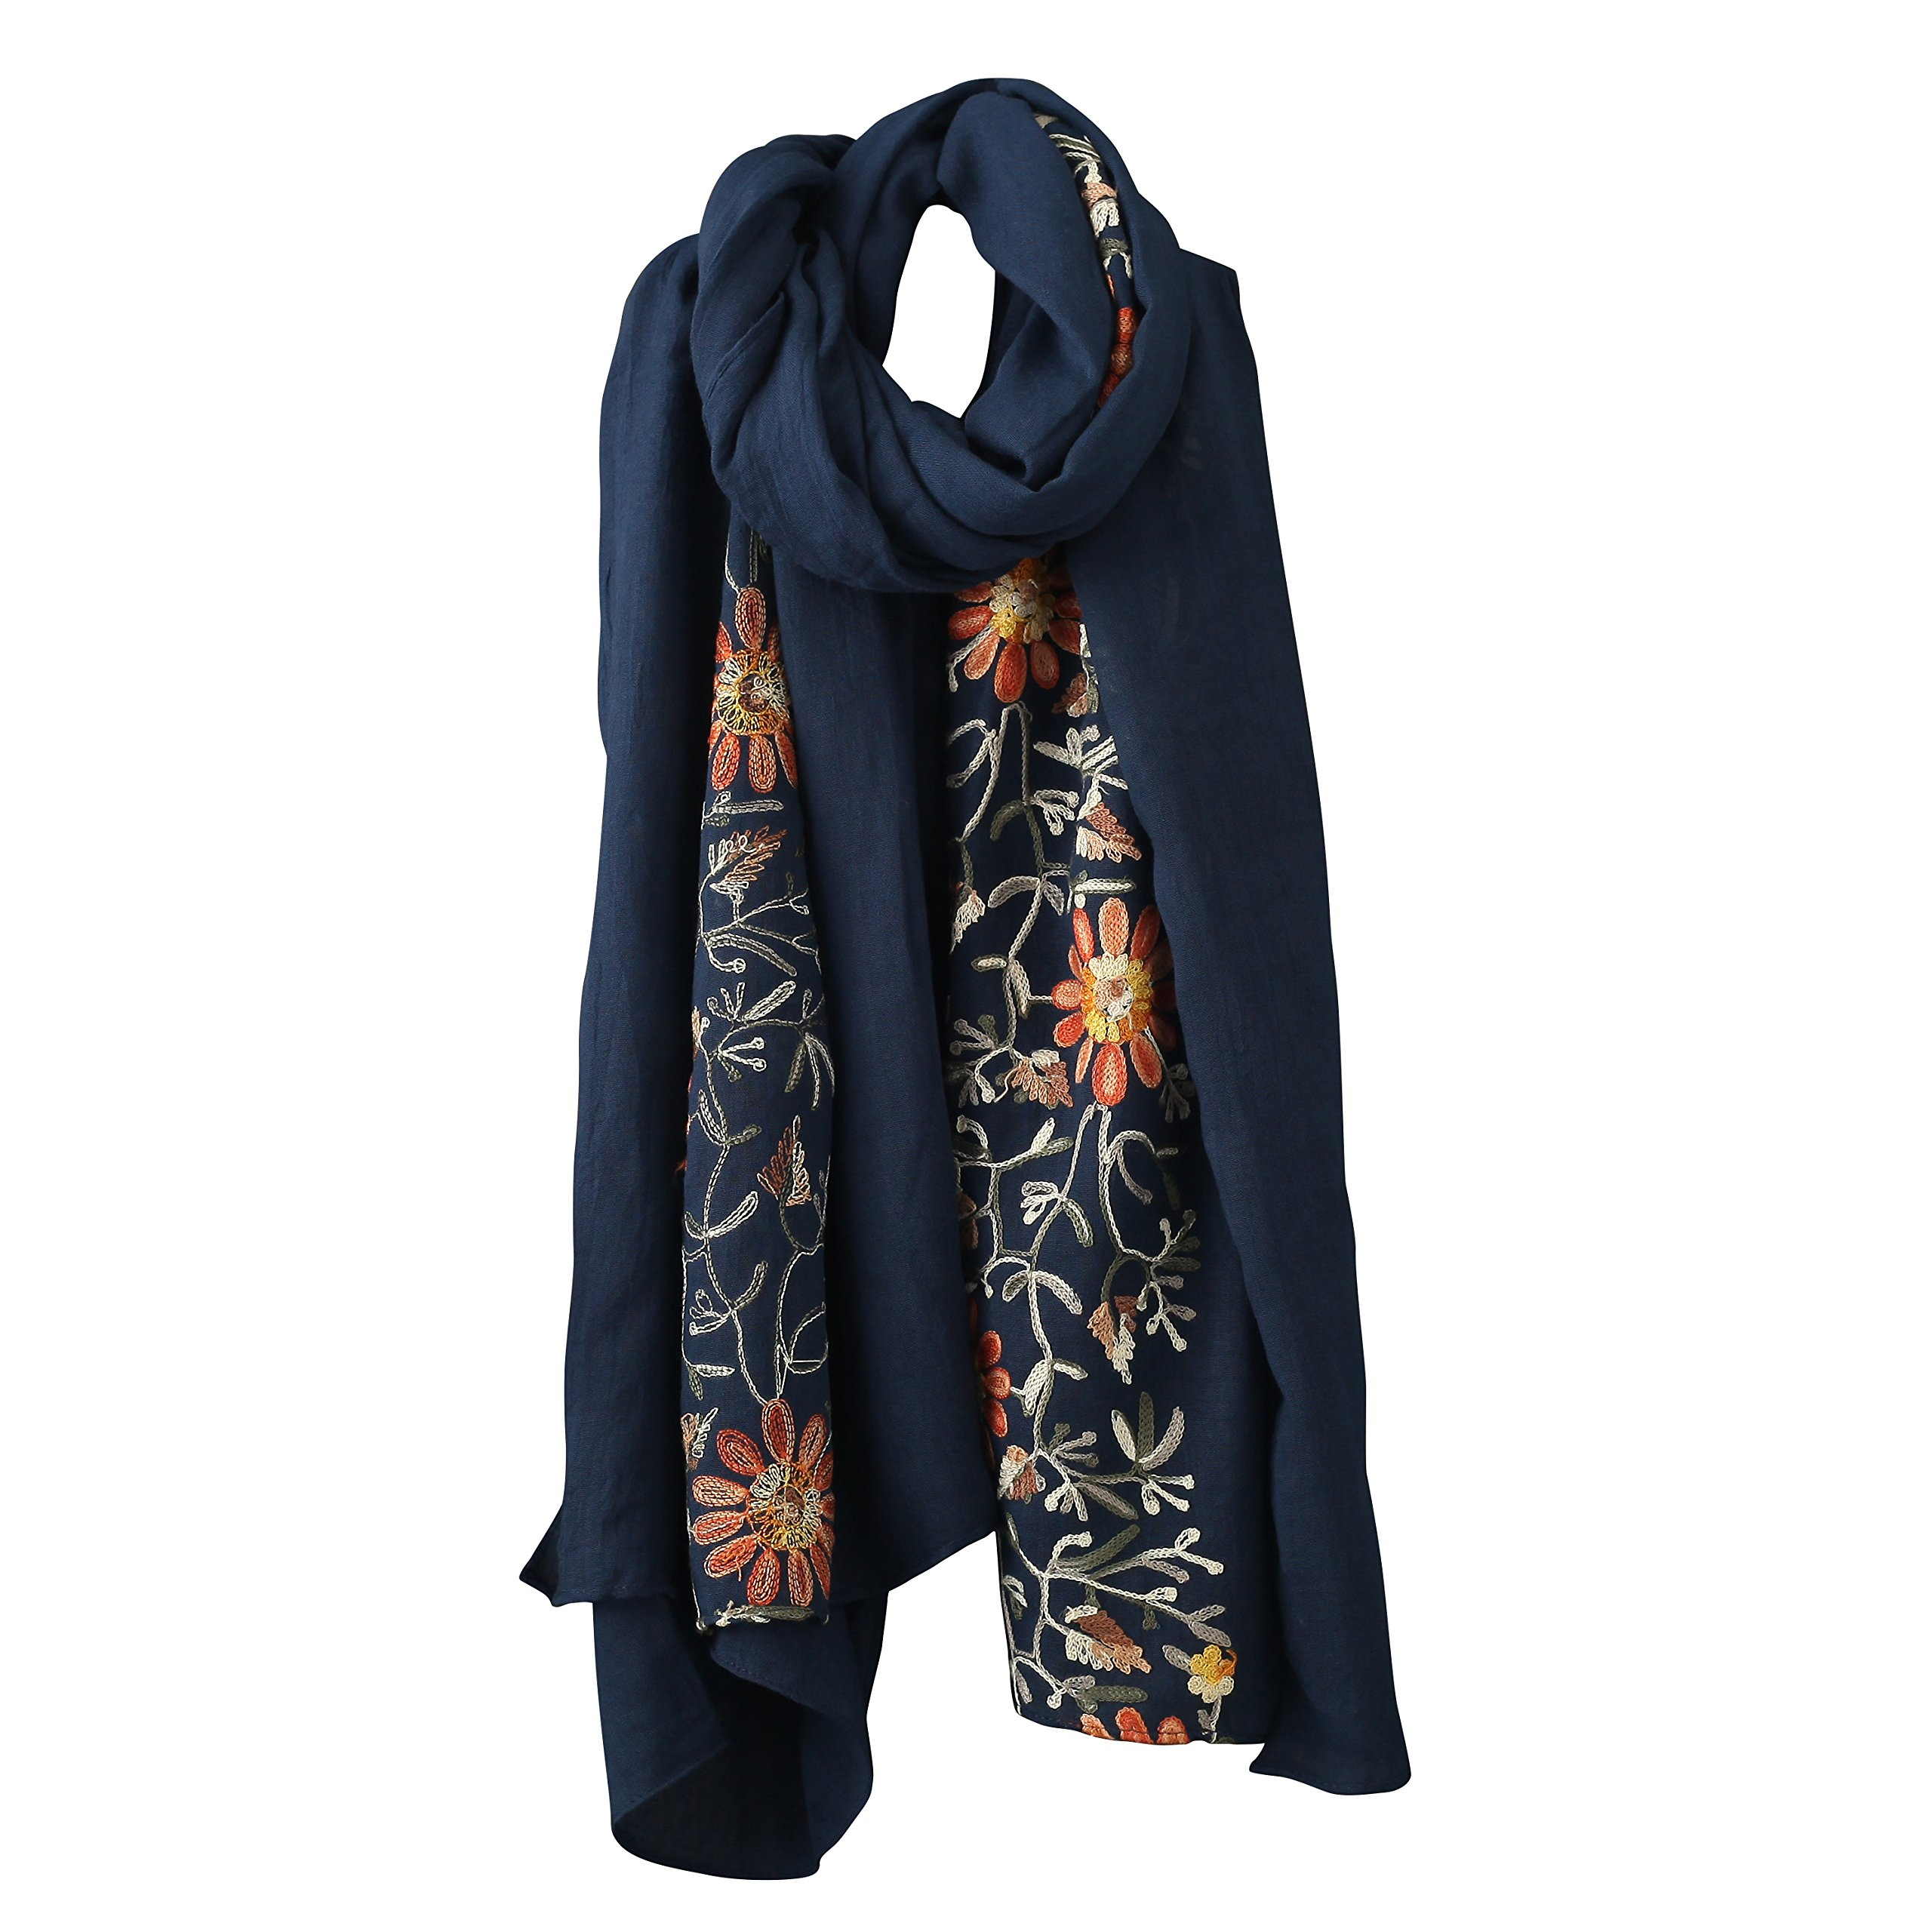 Welltogther Womens National Style Lightweight Neck Scarves Flower Wrap Shawl (Navy)